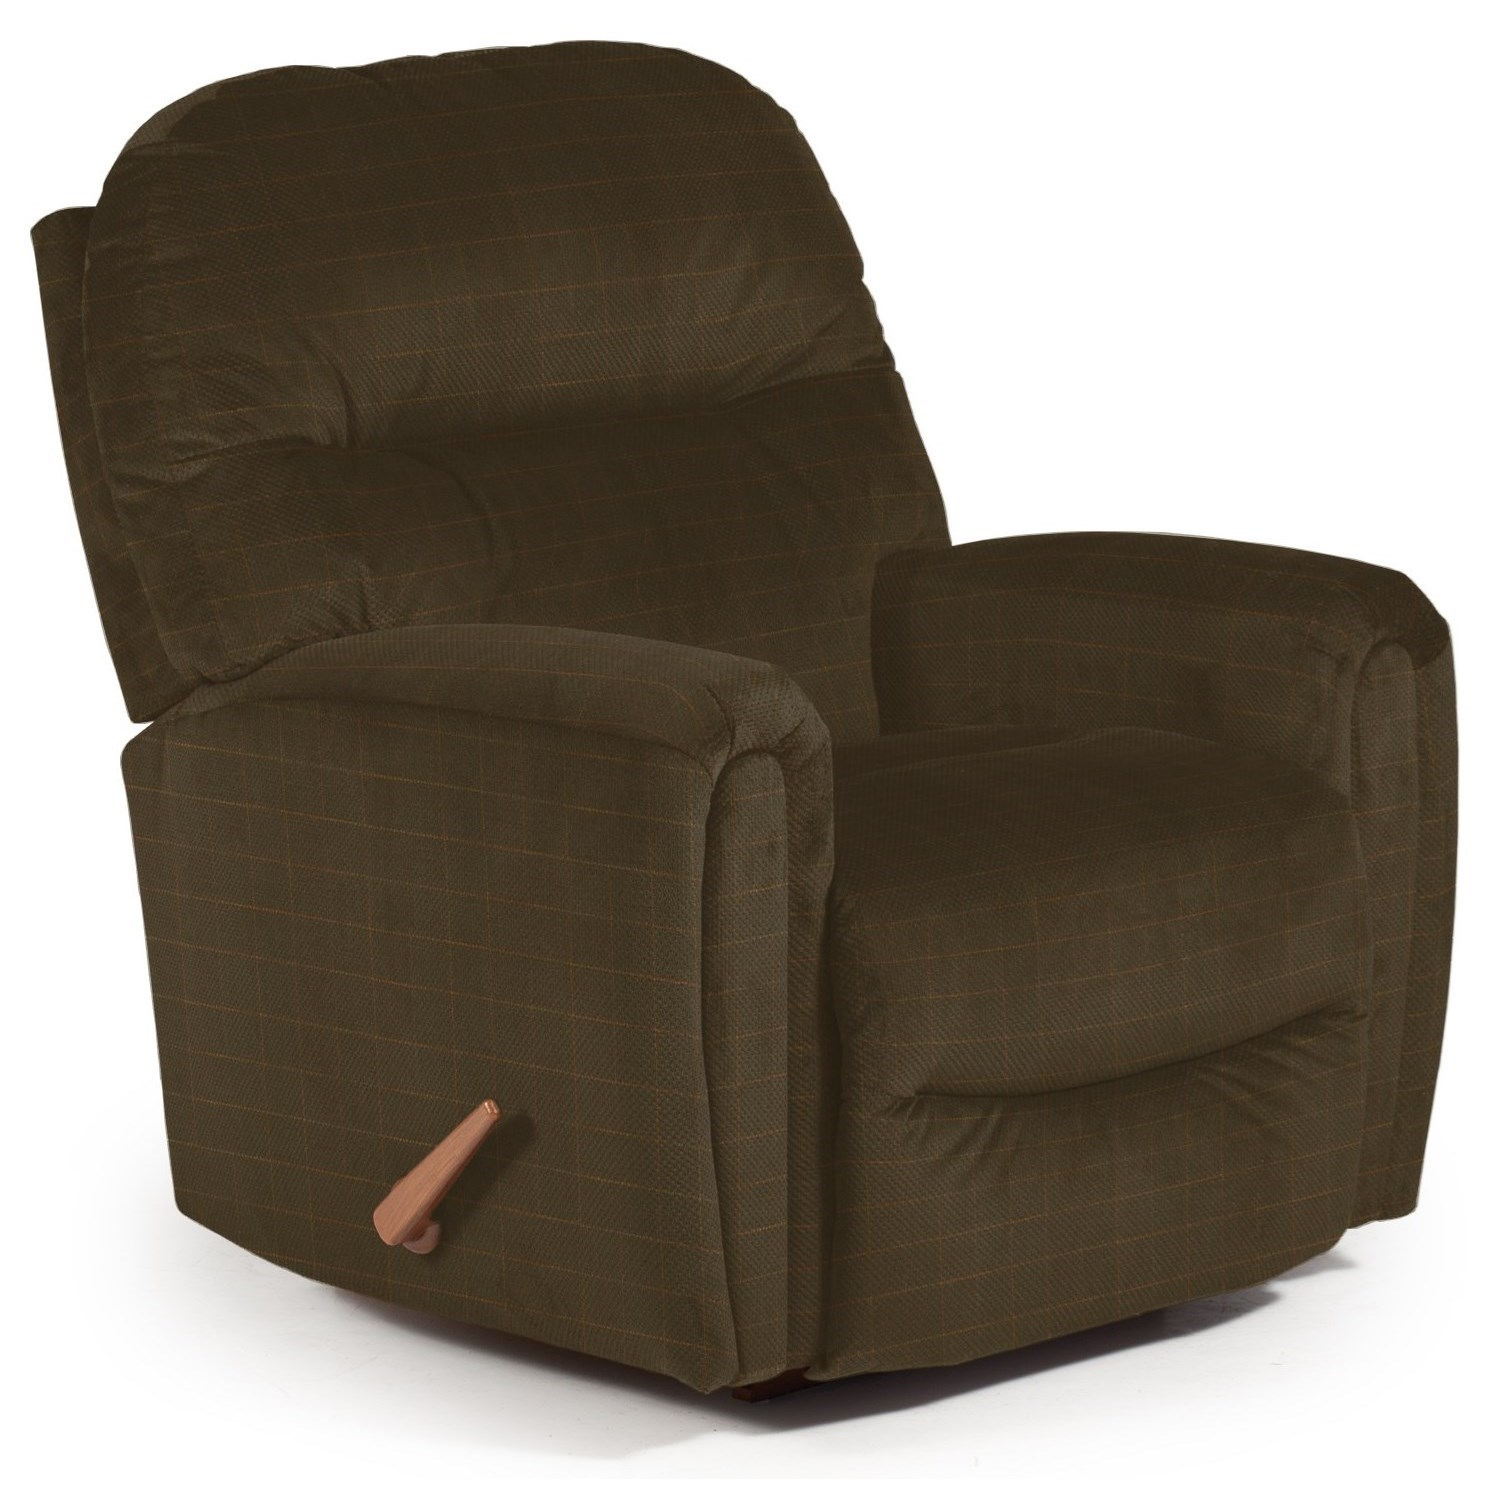 Best Home Furnishings Recliners - Medium Markson Power Space Saver Recliner - Item Number: 653357800-28936